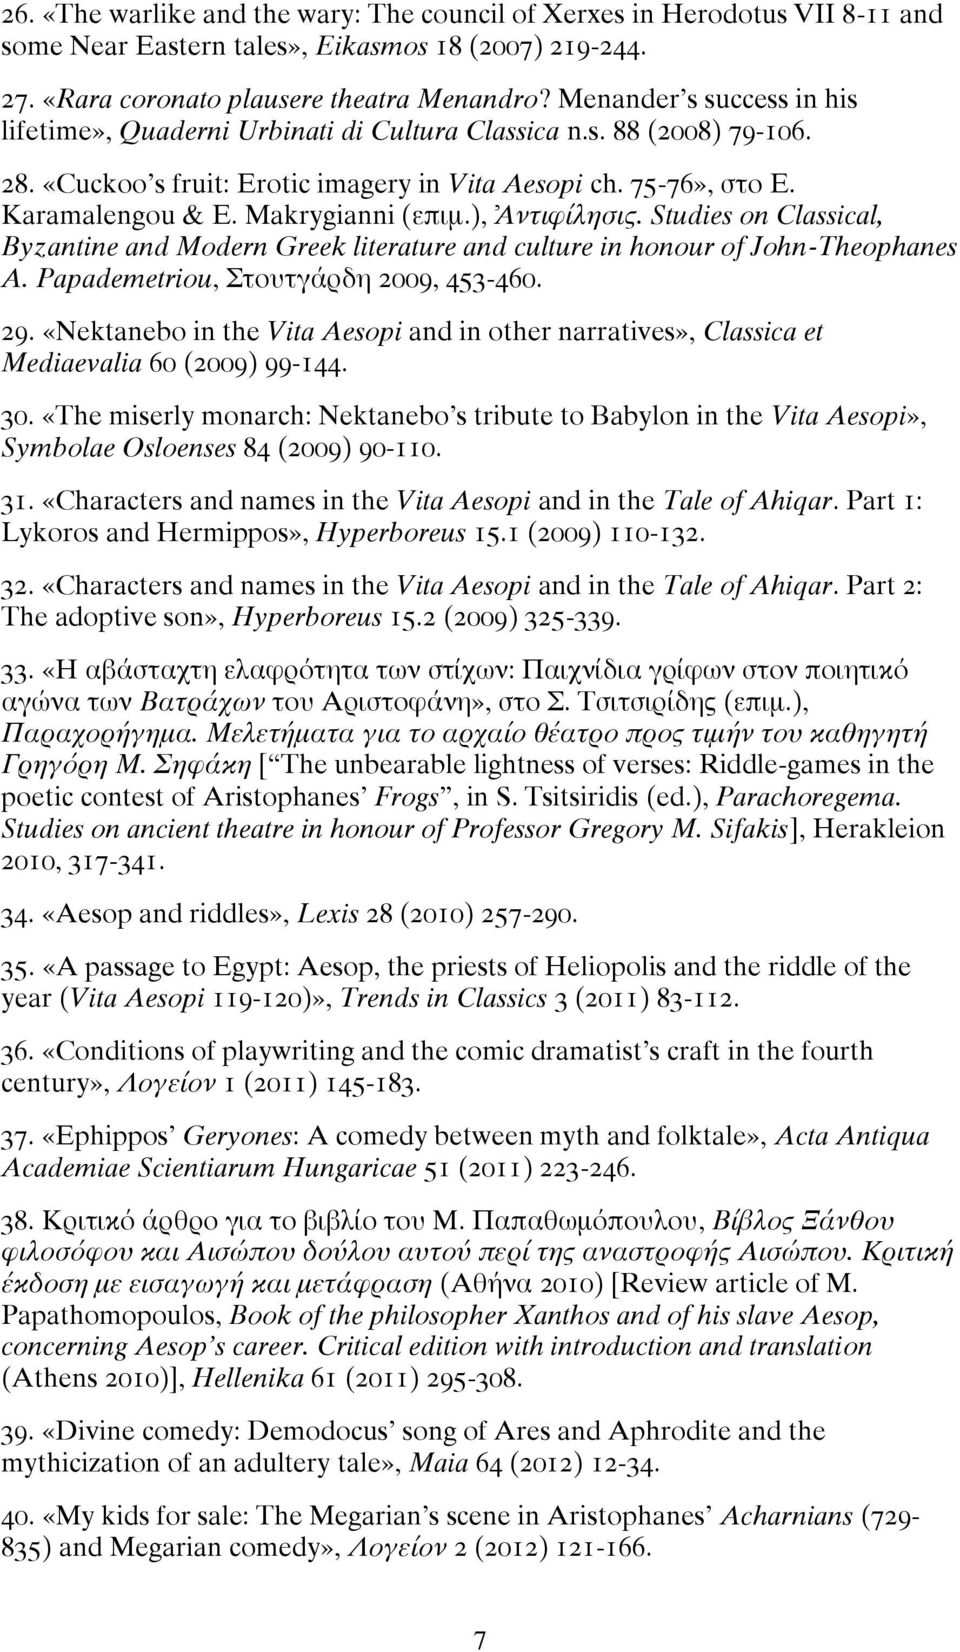 Makrygianni (επιμ.), Ἀντιφίλησις. Studies on Classical, Byzantine and Modern Greek literature and culture in honour of John-Theophanes A. Papademetriou, Στουτγάρδη 2009, 453-460. 29.